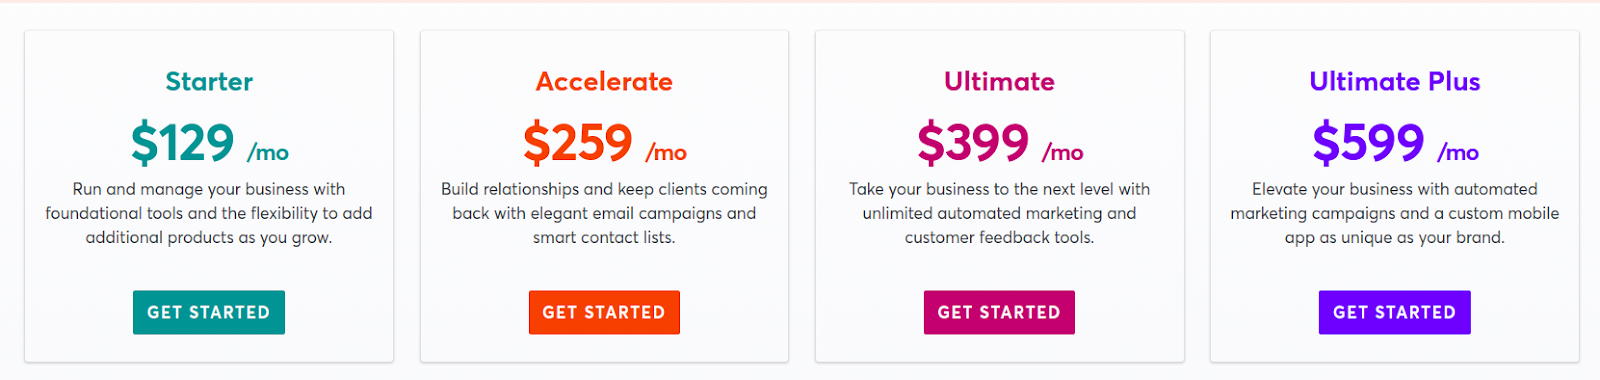 Mindbody's pricing tiers and subscription options.